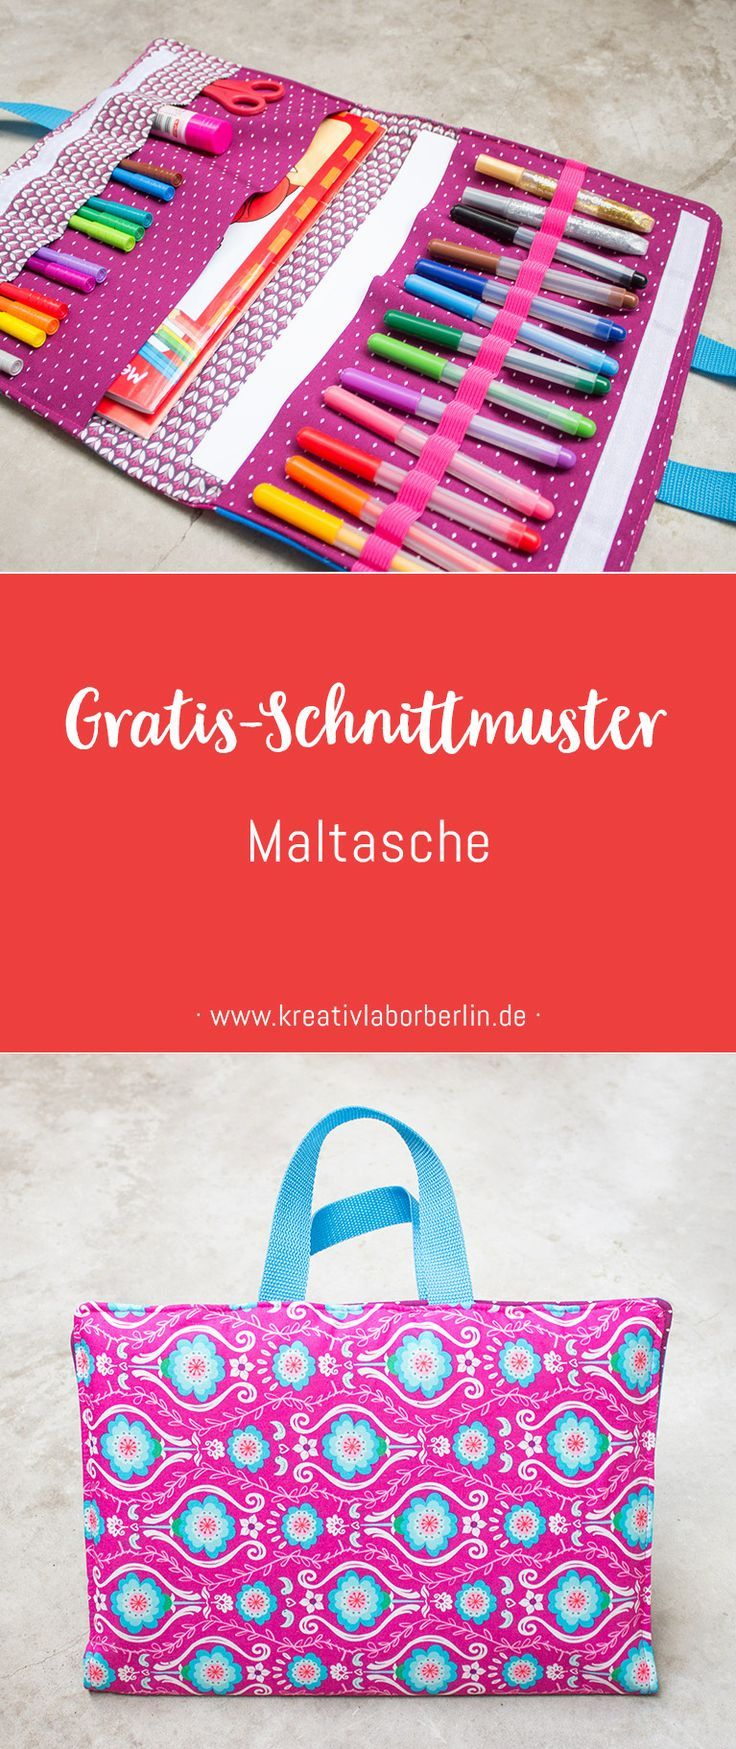 116 best nähen für kinder images by Beate on Pinterest | Sewing ...